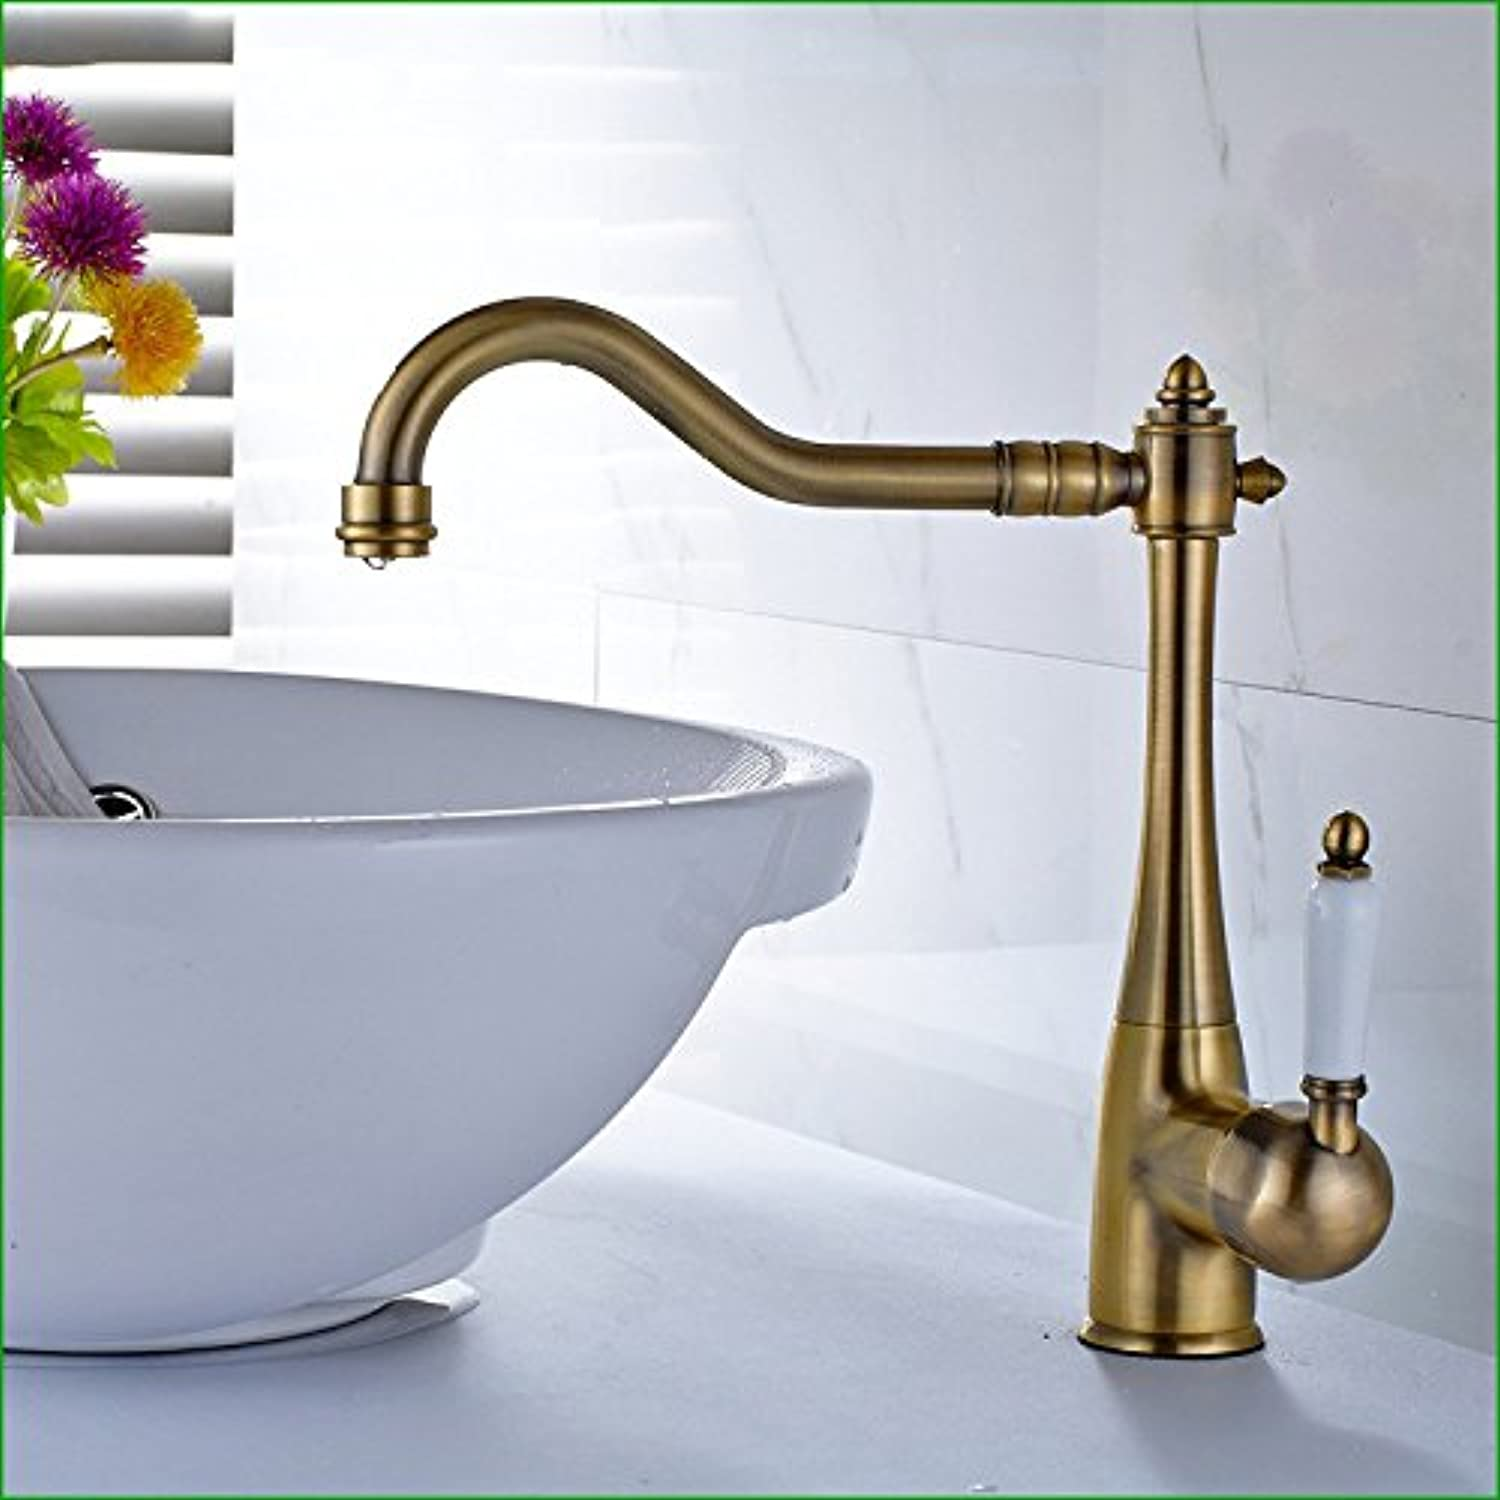 Hlluya Professional Sink Mixer Tap Kitchen Faucet The sink faucet full copper bluee ceramic handle to redate the antique table basin faucets Mixer Taps